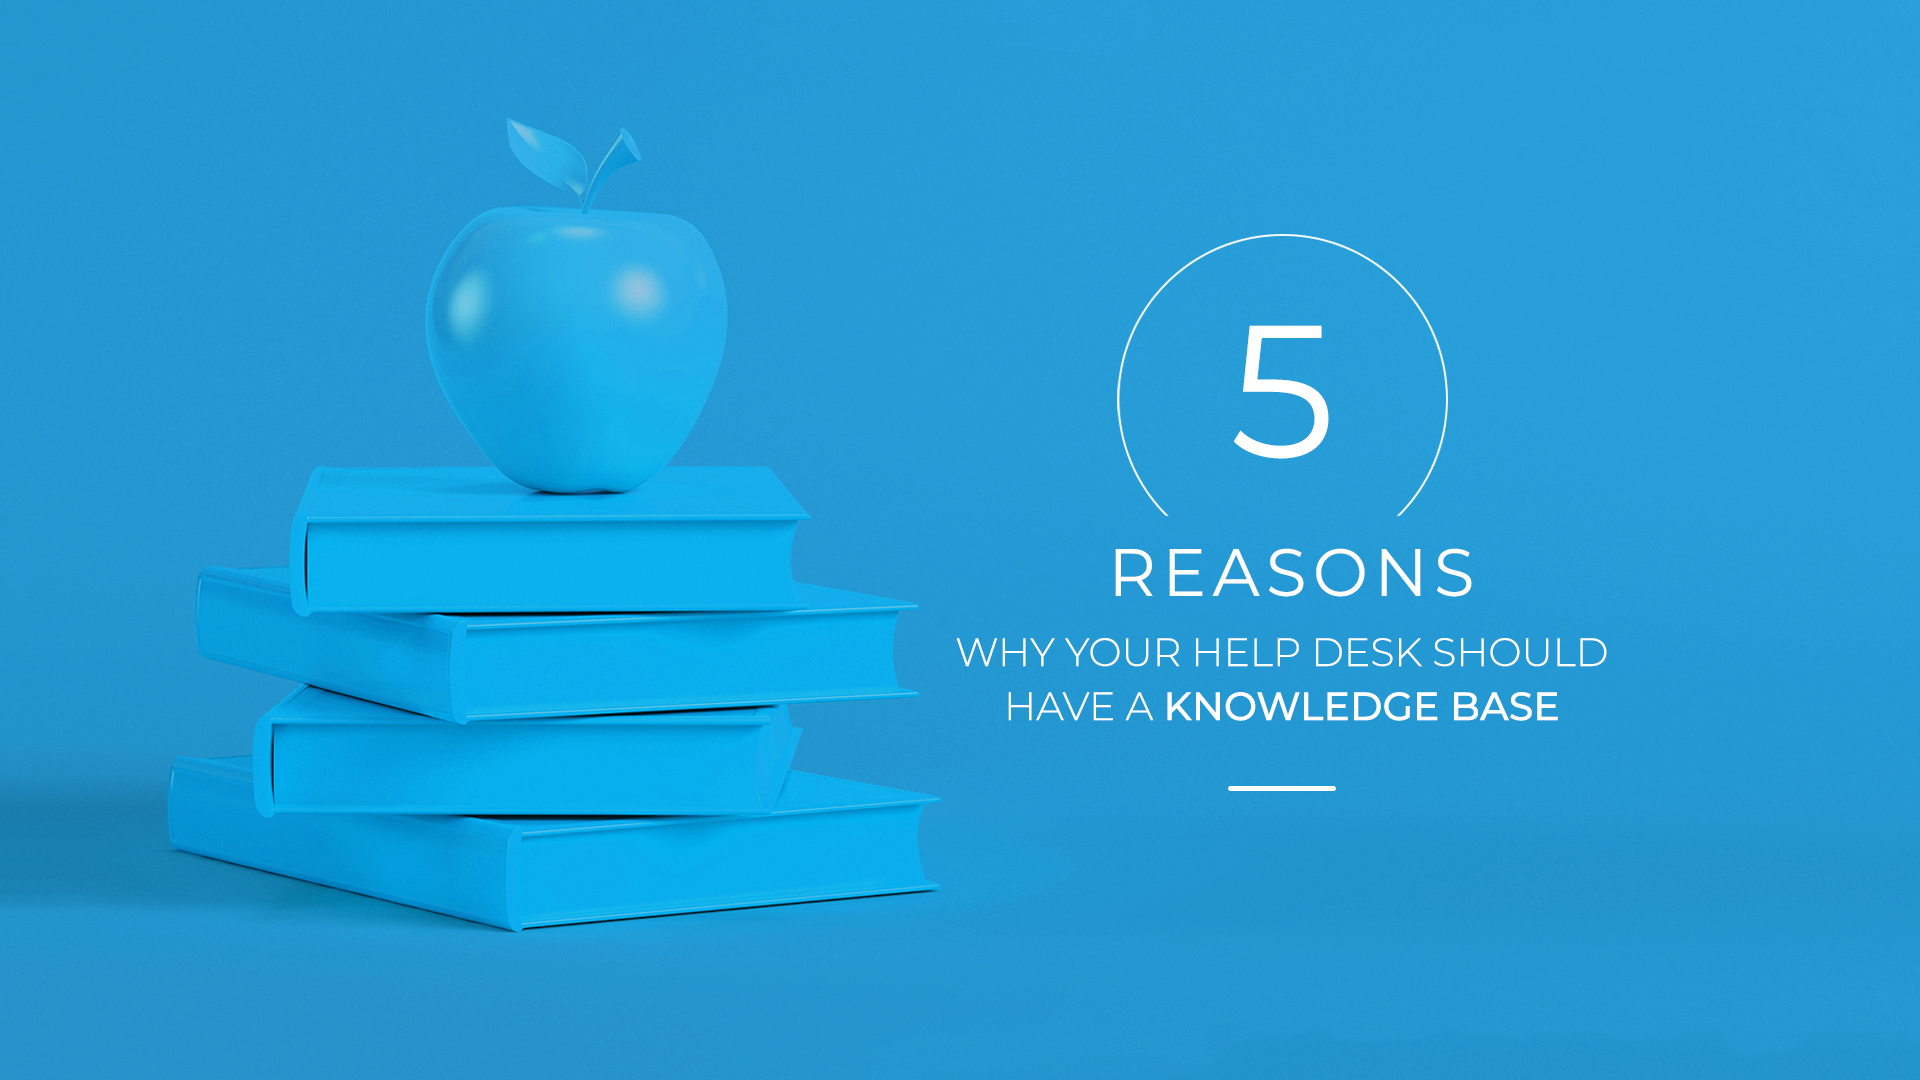 5 Reasons Why Your Help Desk Should Have A Knowledge Base